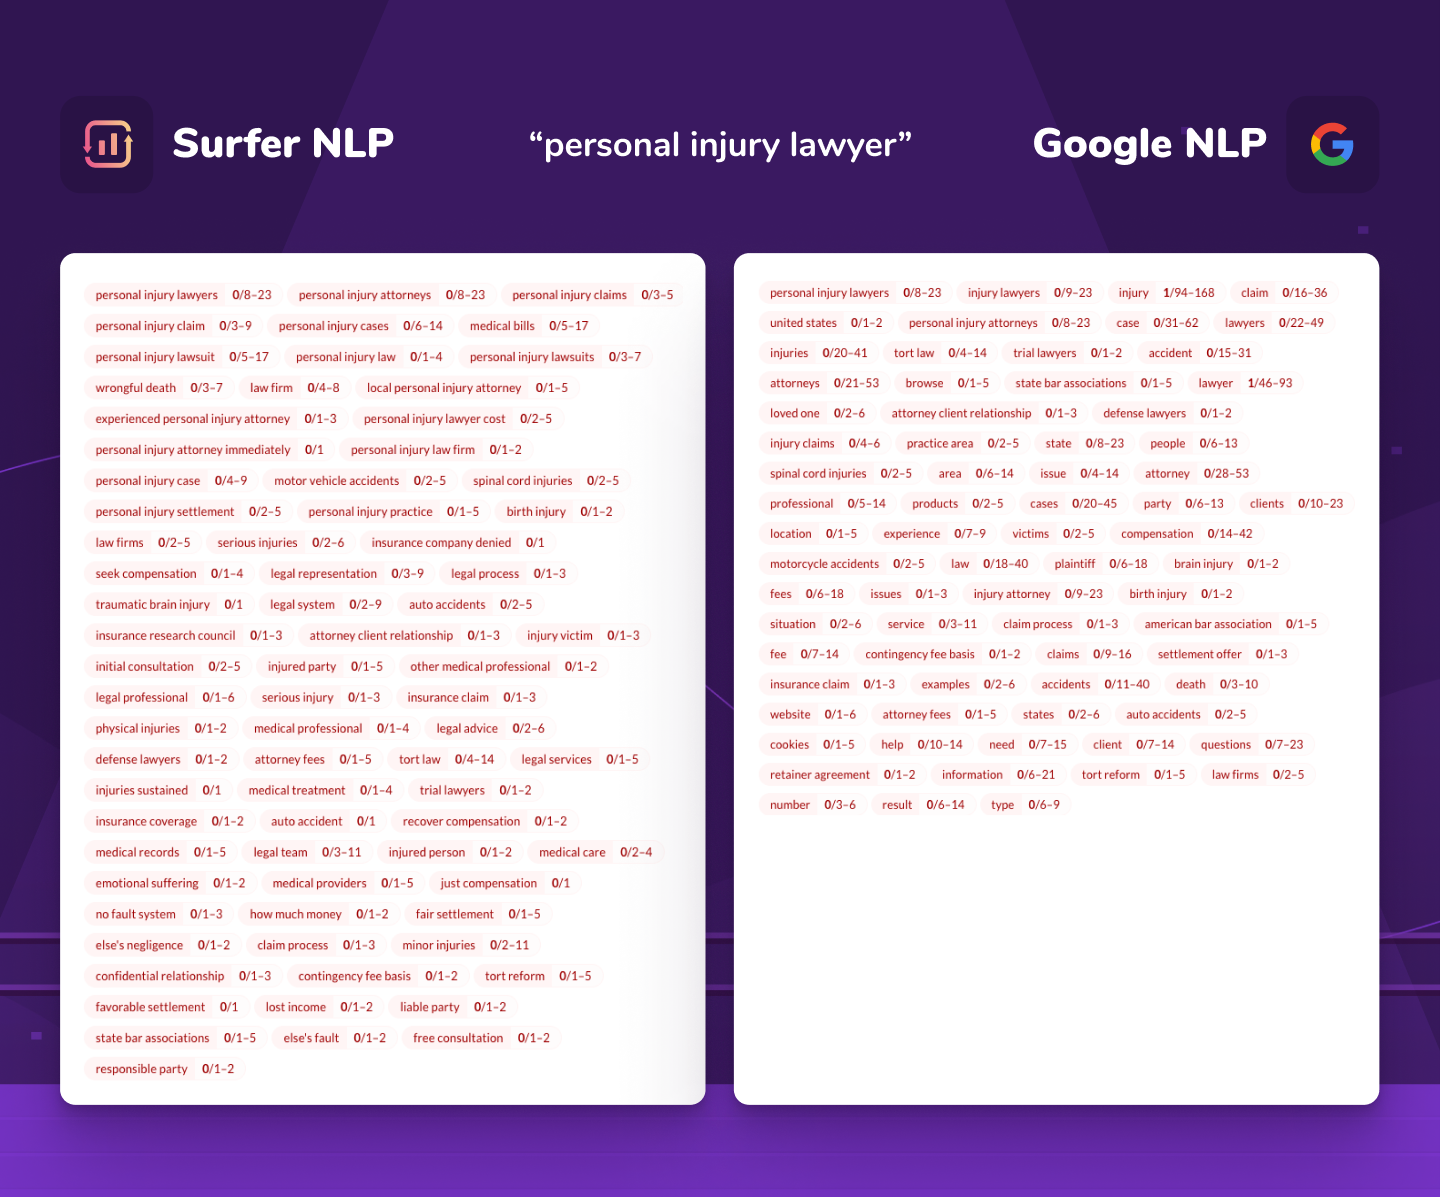 """comparison of Surfer NLP and Google NLP for """"personal injury lawyer"""" keyword"""